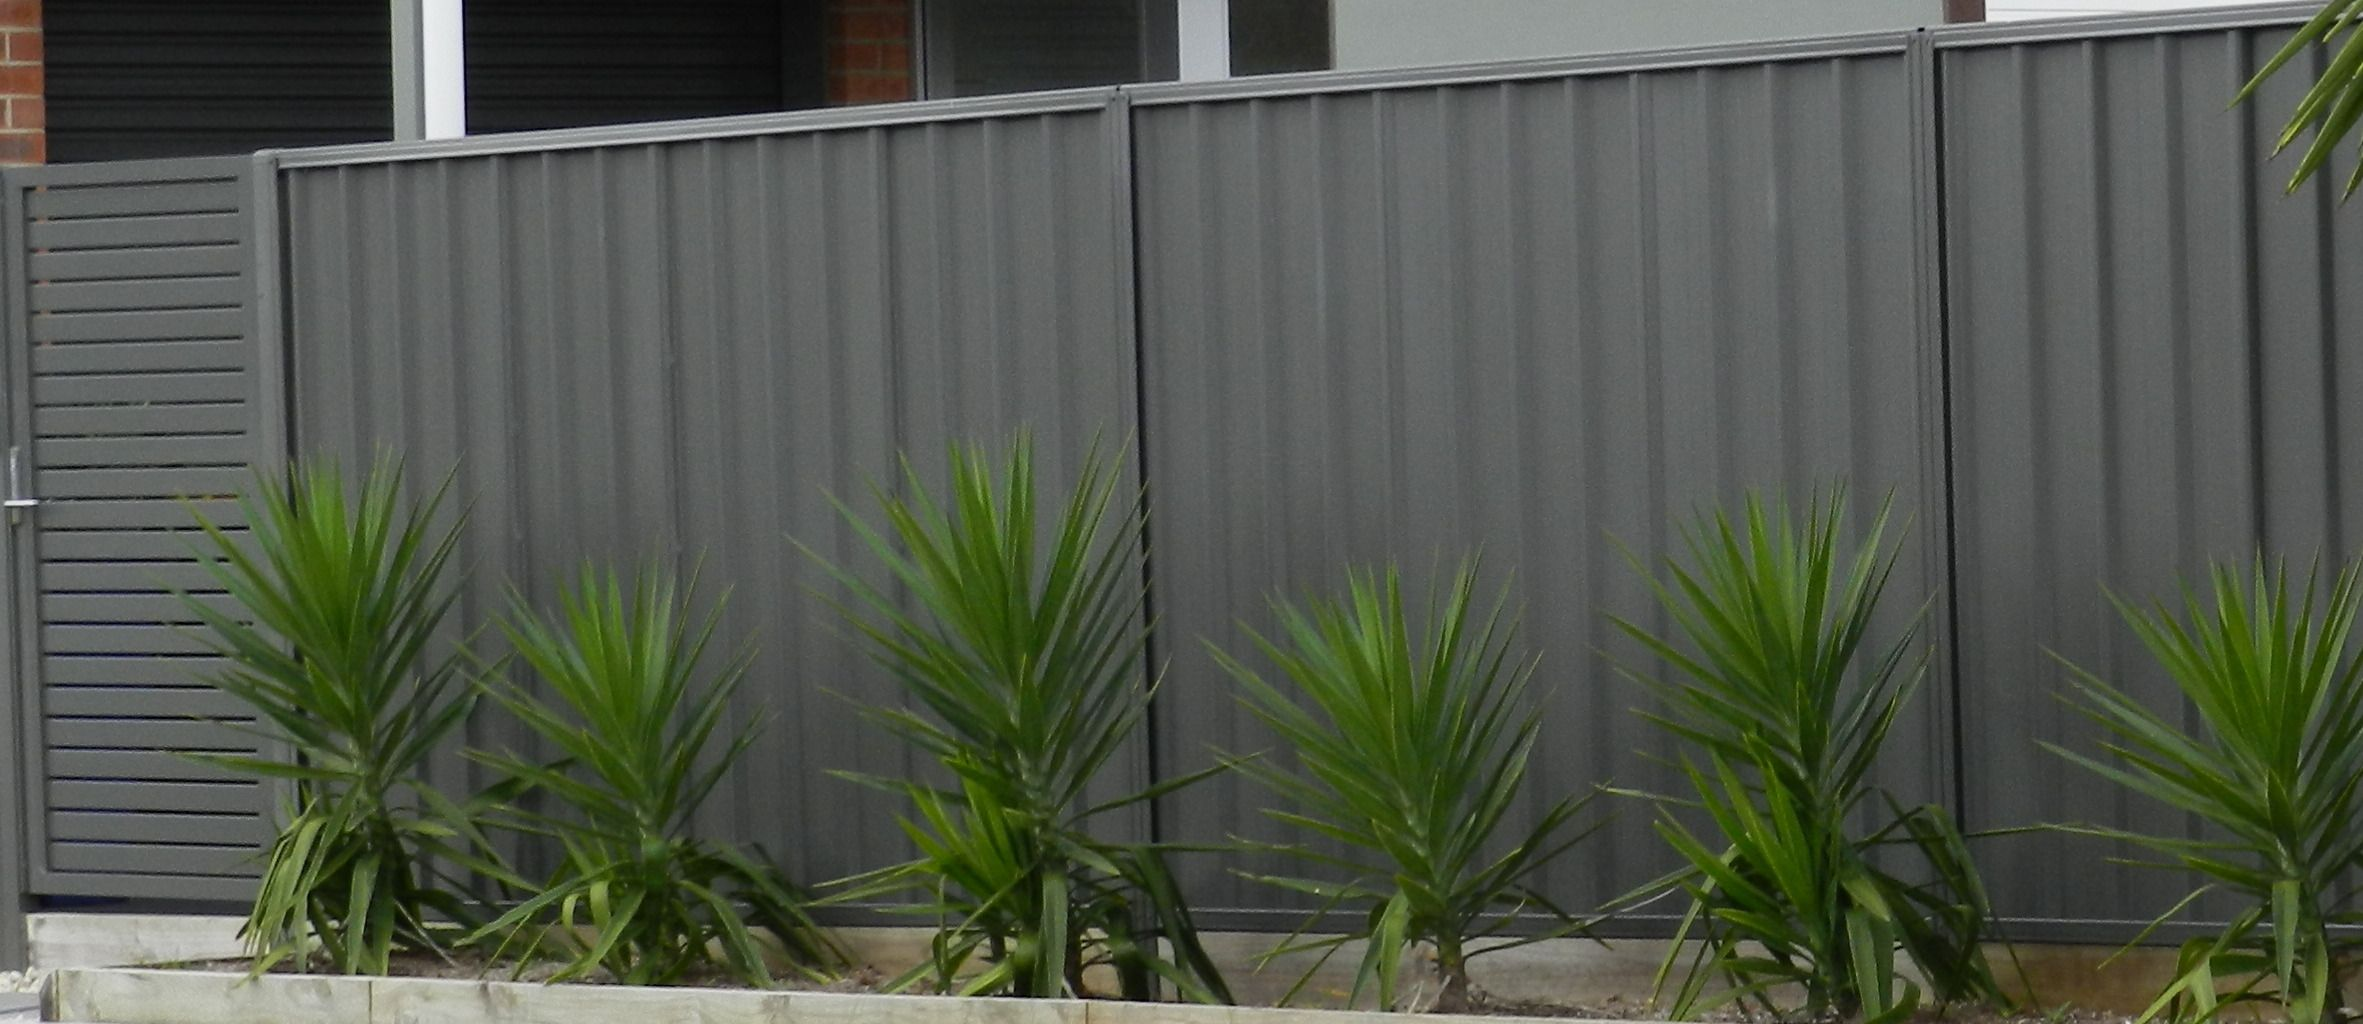 Colorbond fence google search fence pinterest Fence paint colors ideas